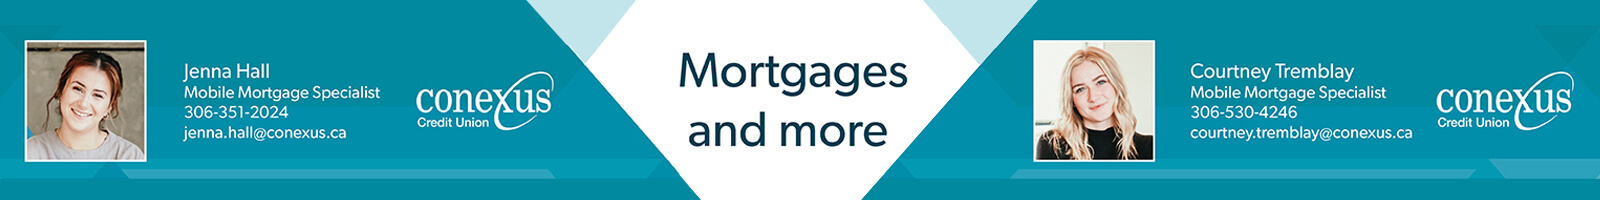 Conexus Mobile Mortgage Specialists